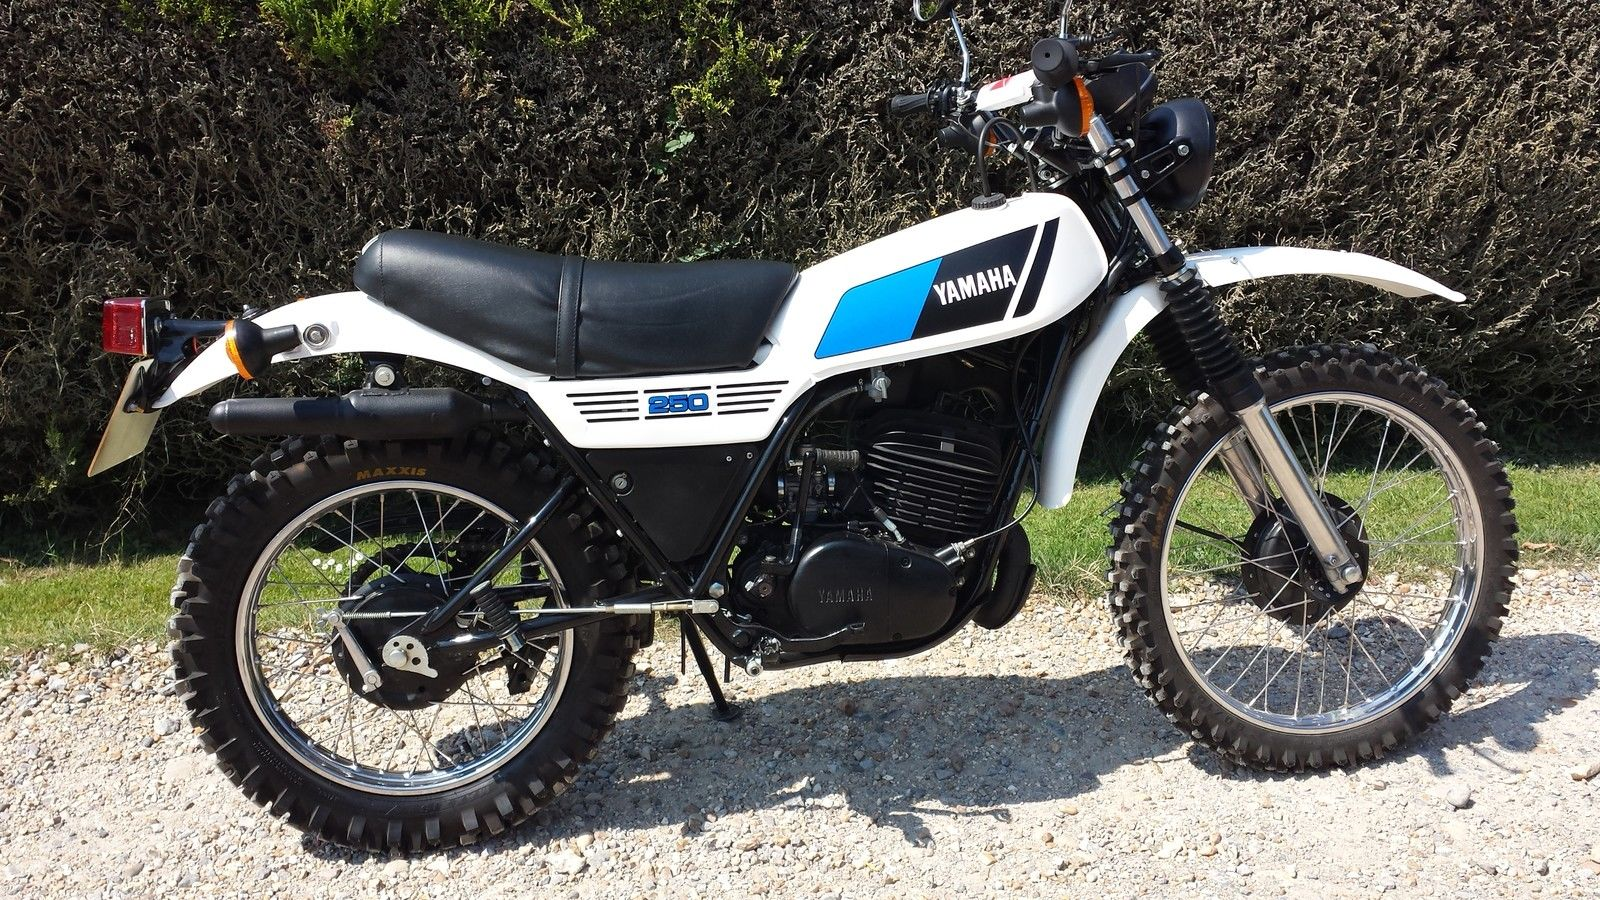 Restored yamaha dt250 1979 photographs at classic bikes for Yamaha dt 250 for sale